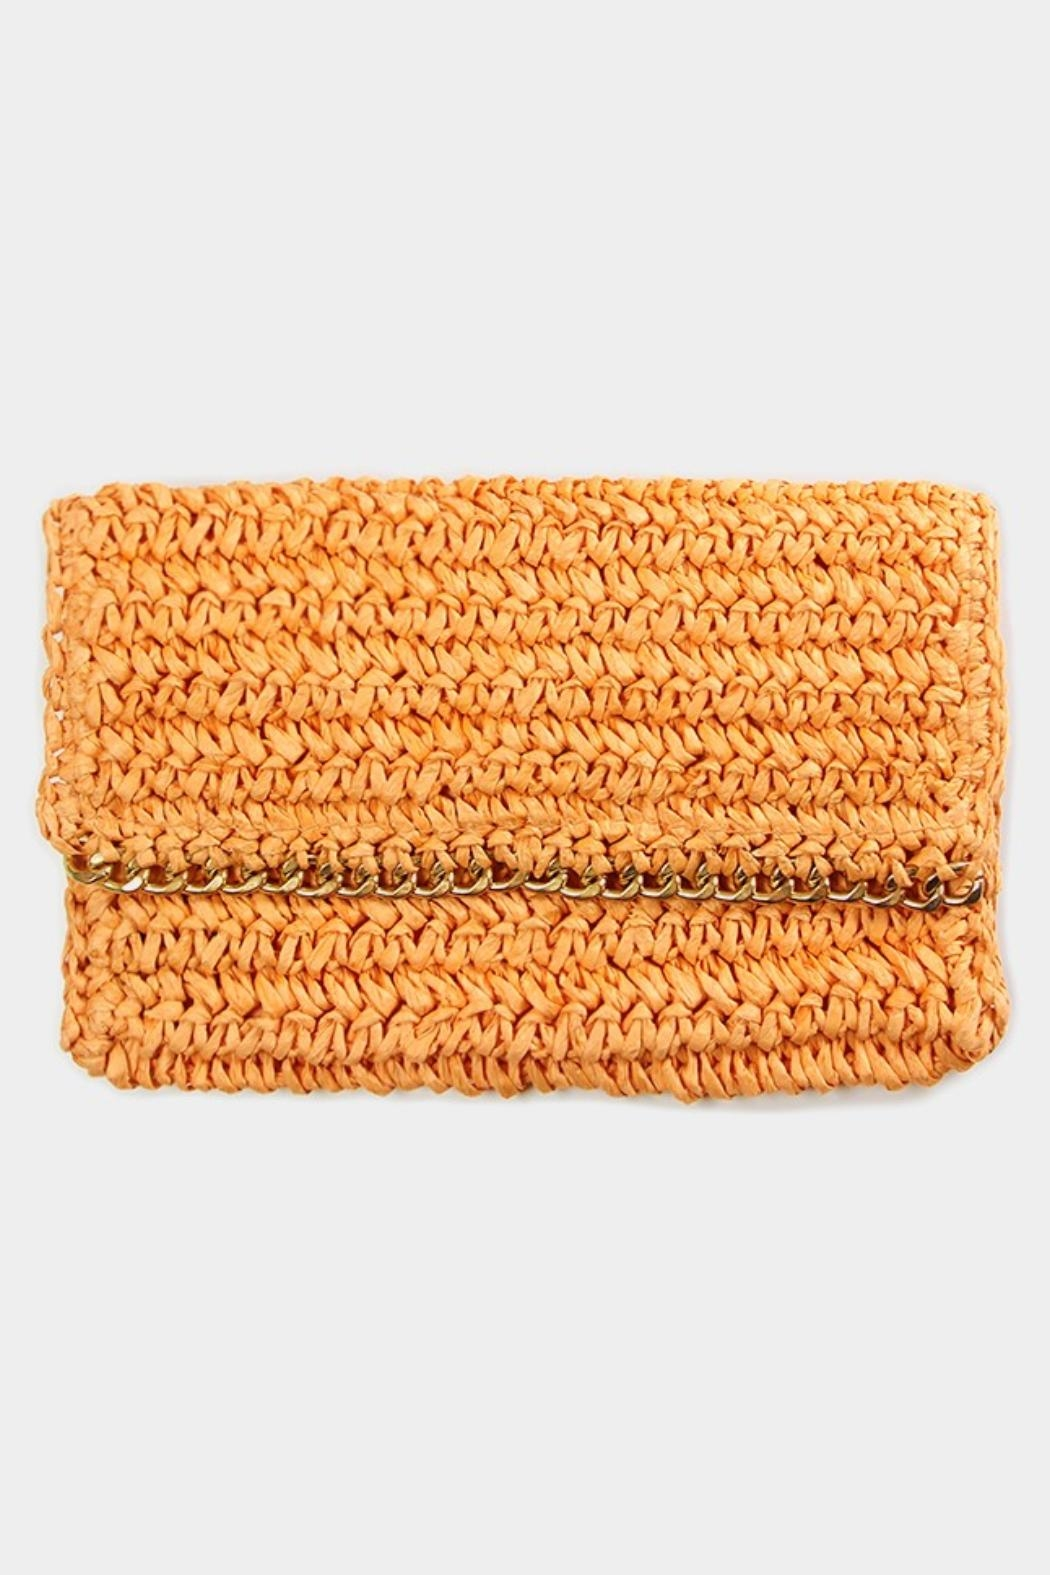 Embellish Straw Chain Clutch - Front Cropped Image